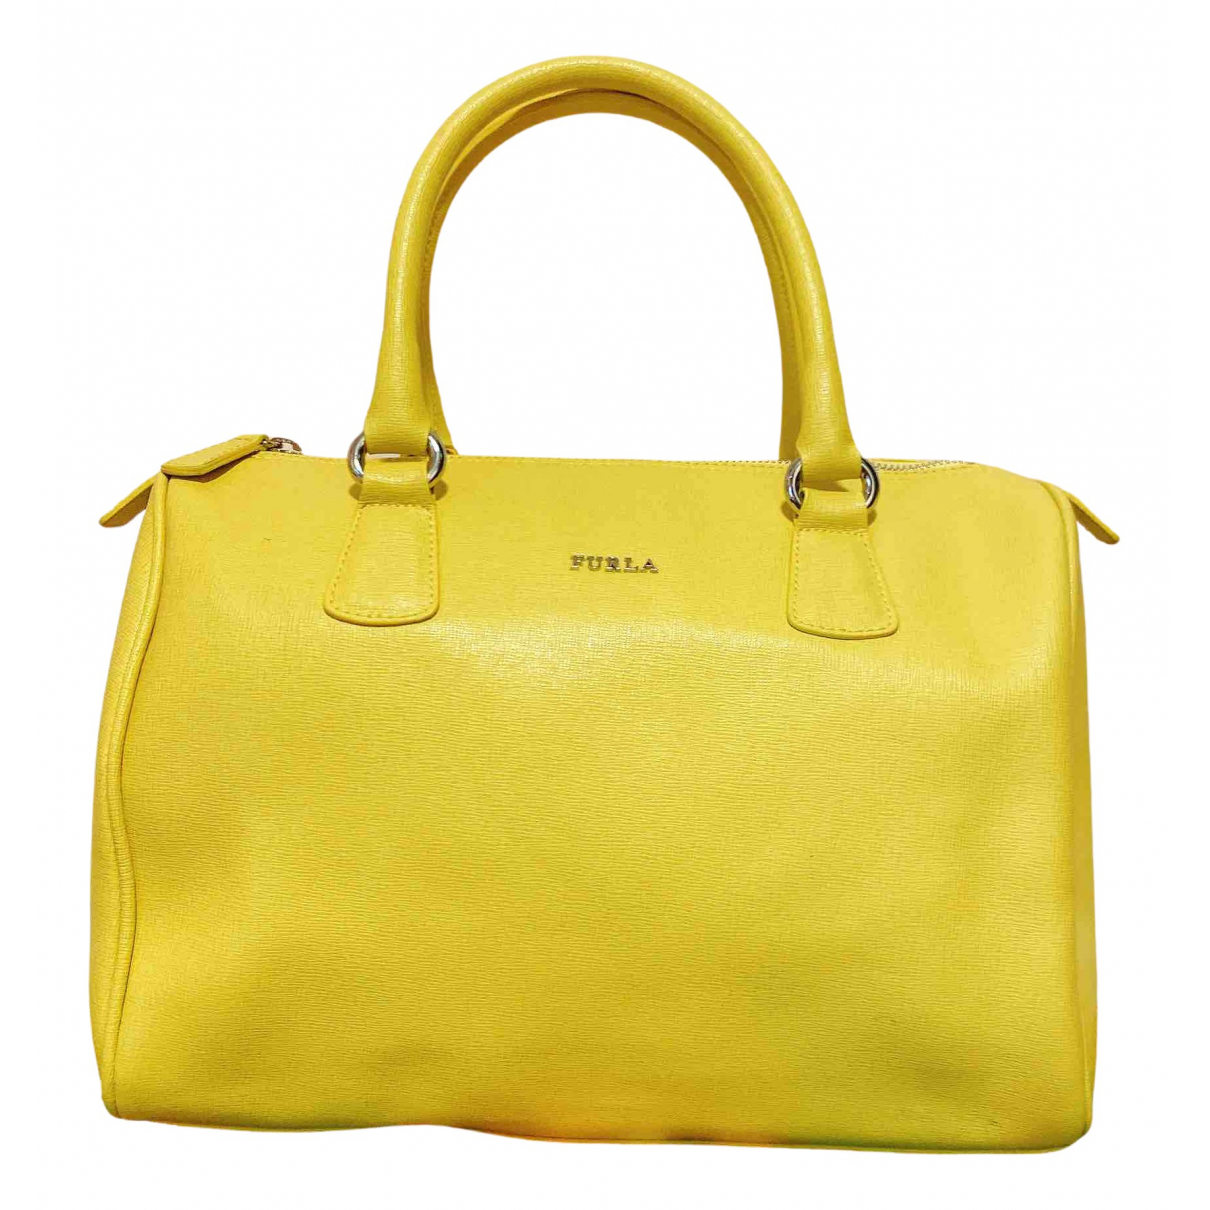 Furla \N Yellow Leather handbag for Women \N